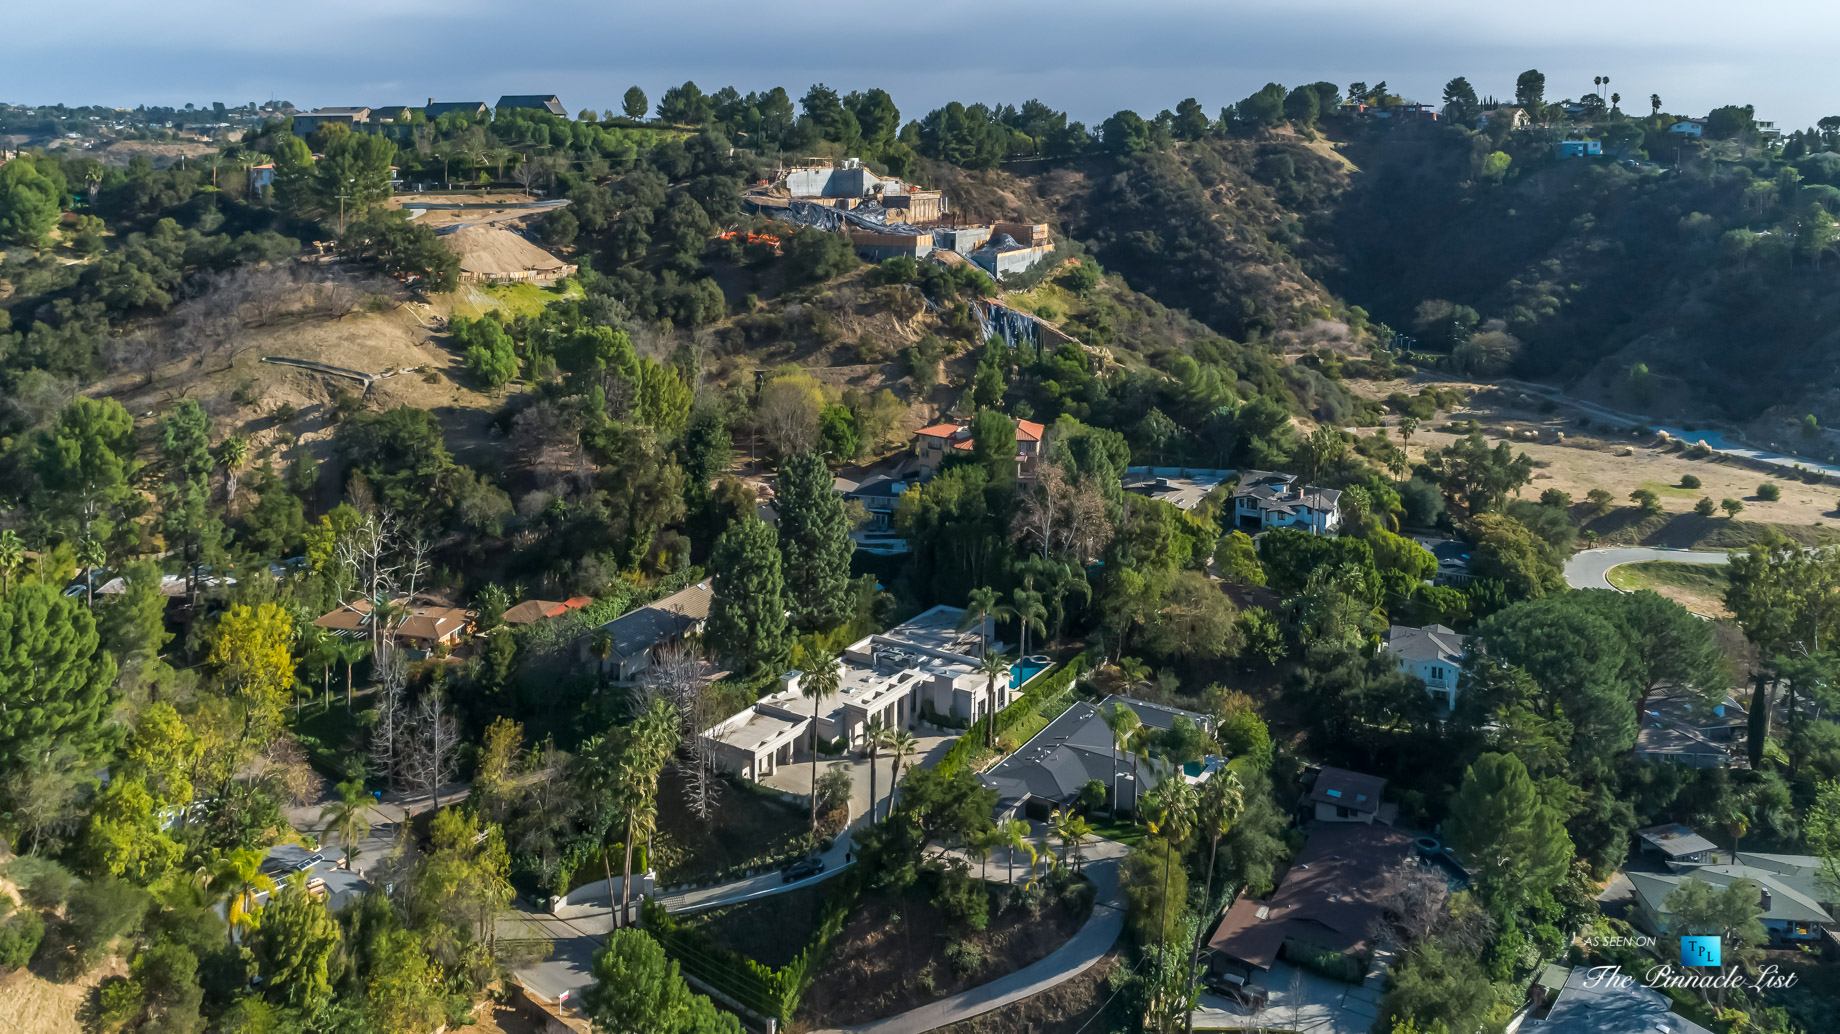 2720 Ellison Dr, Beverly Hills, CA, USA - Drone Aerial View - Luxury Real Estate - Italian Villa Hilltop Home